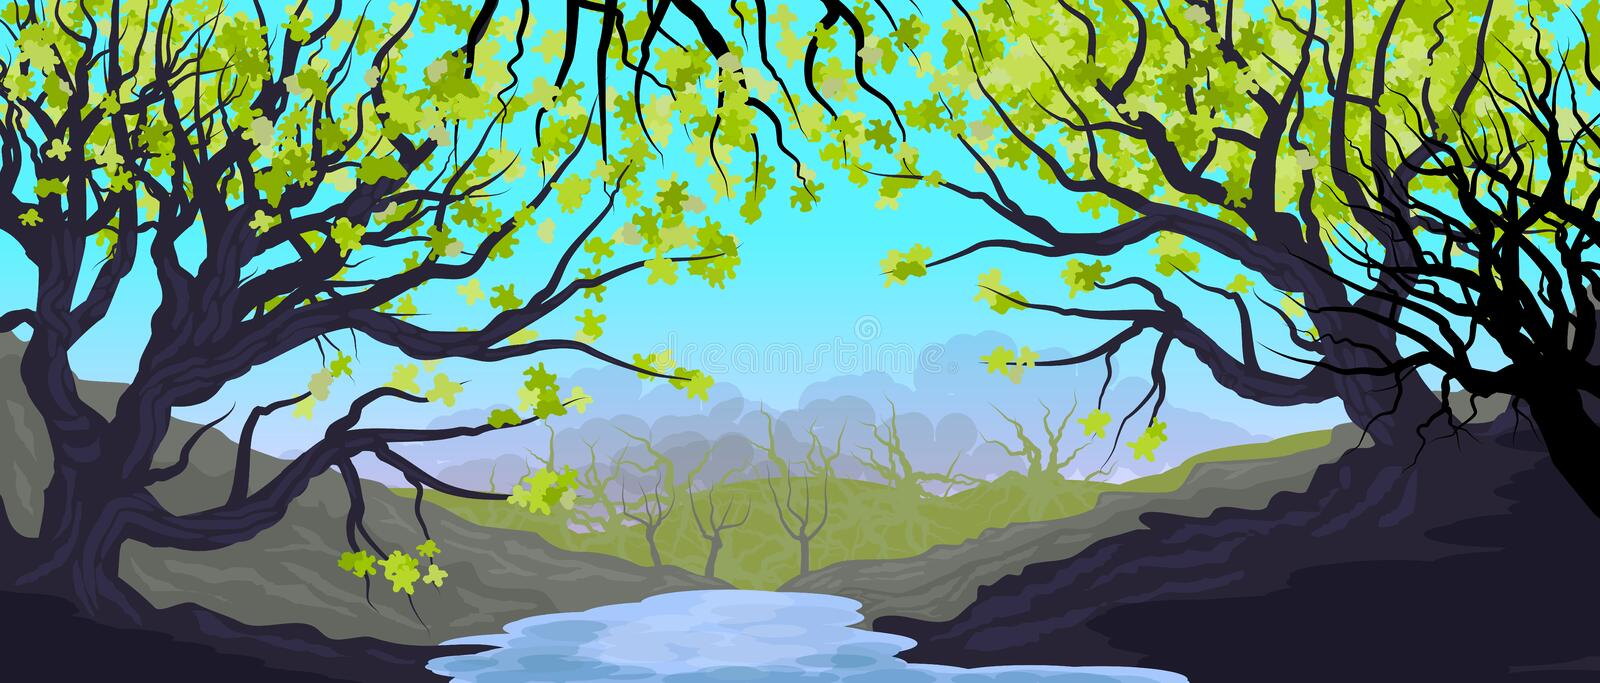 Natural landscape with grove and trees in the foreground. Dense forest. Illustration. Bottom. Wallpaper stock illustration